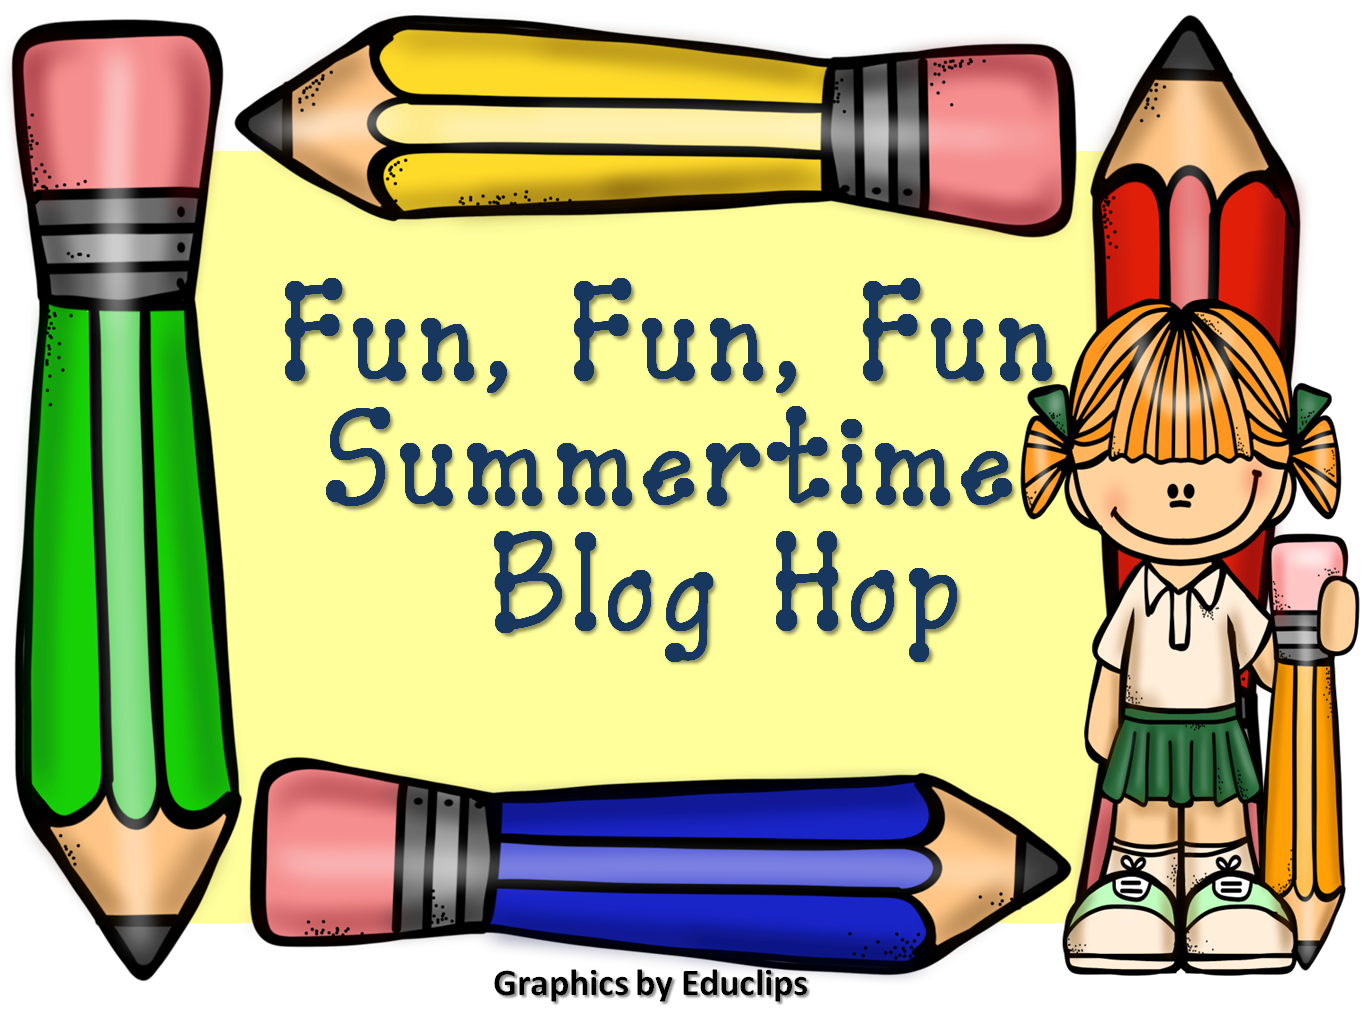 Fun, Fun, Fun Summertime Blog Hop